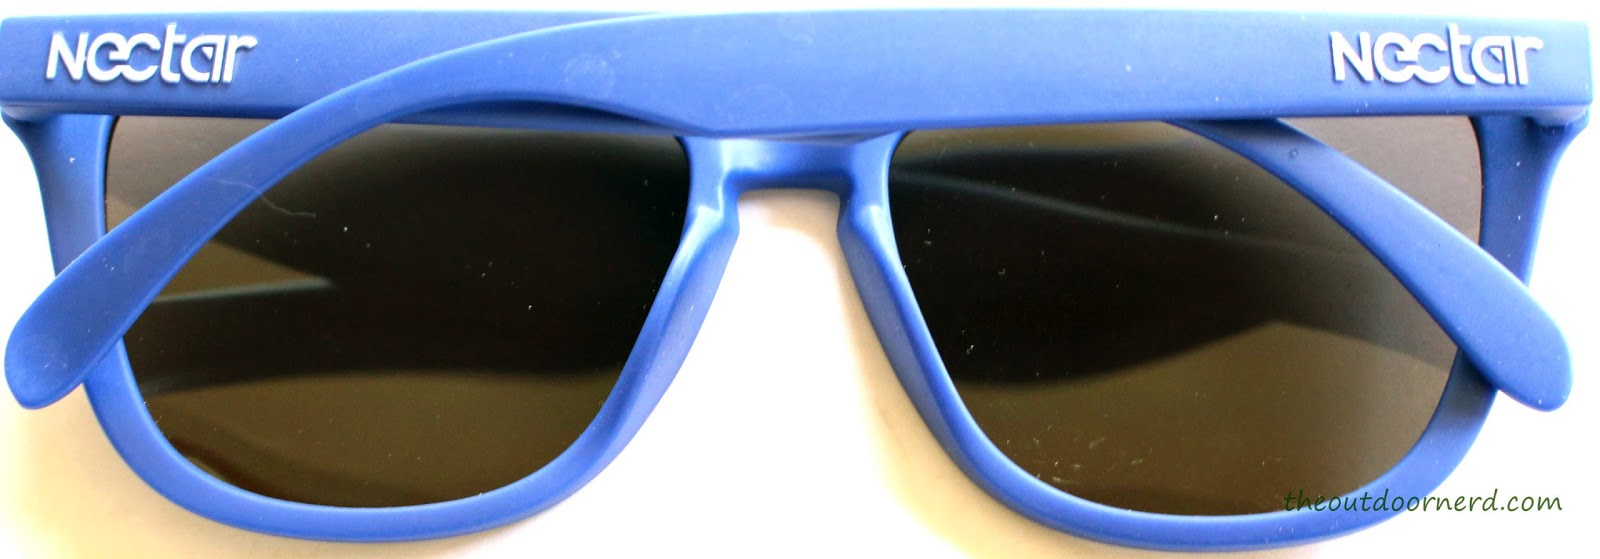 Nectar Cruze Sunglasses: Product View 6